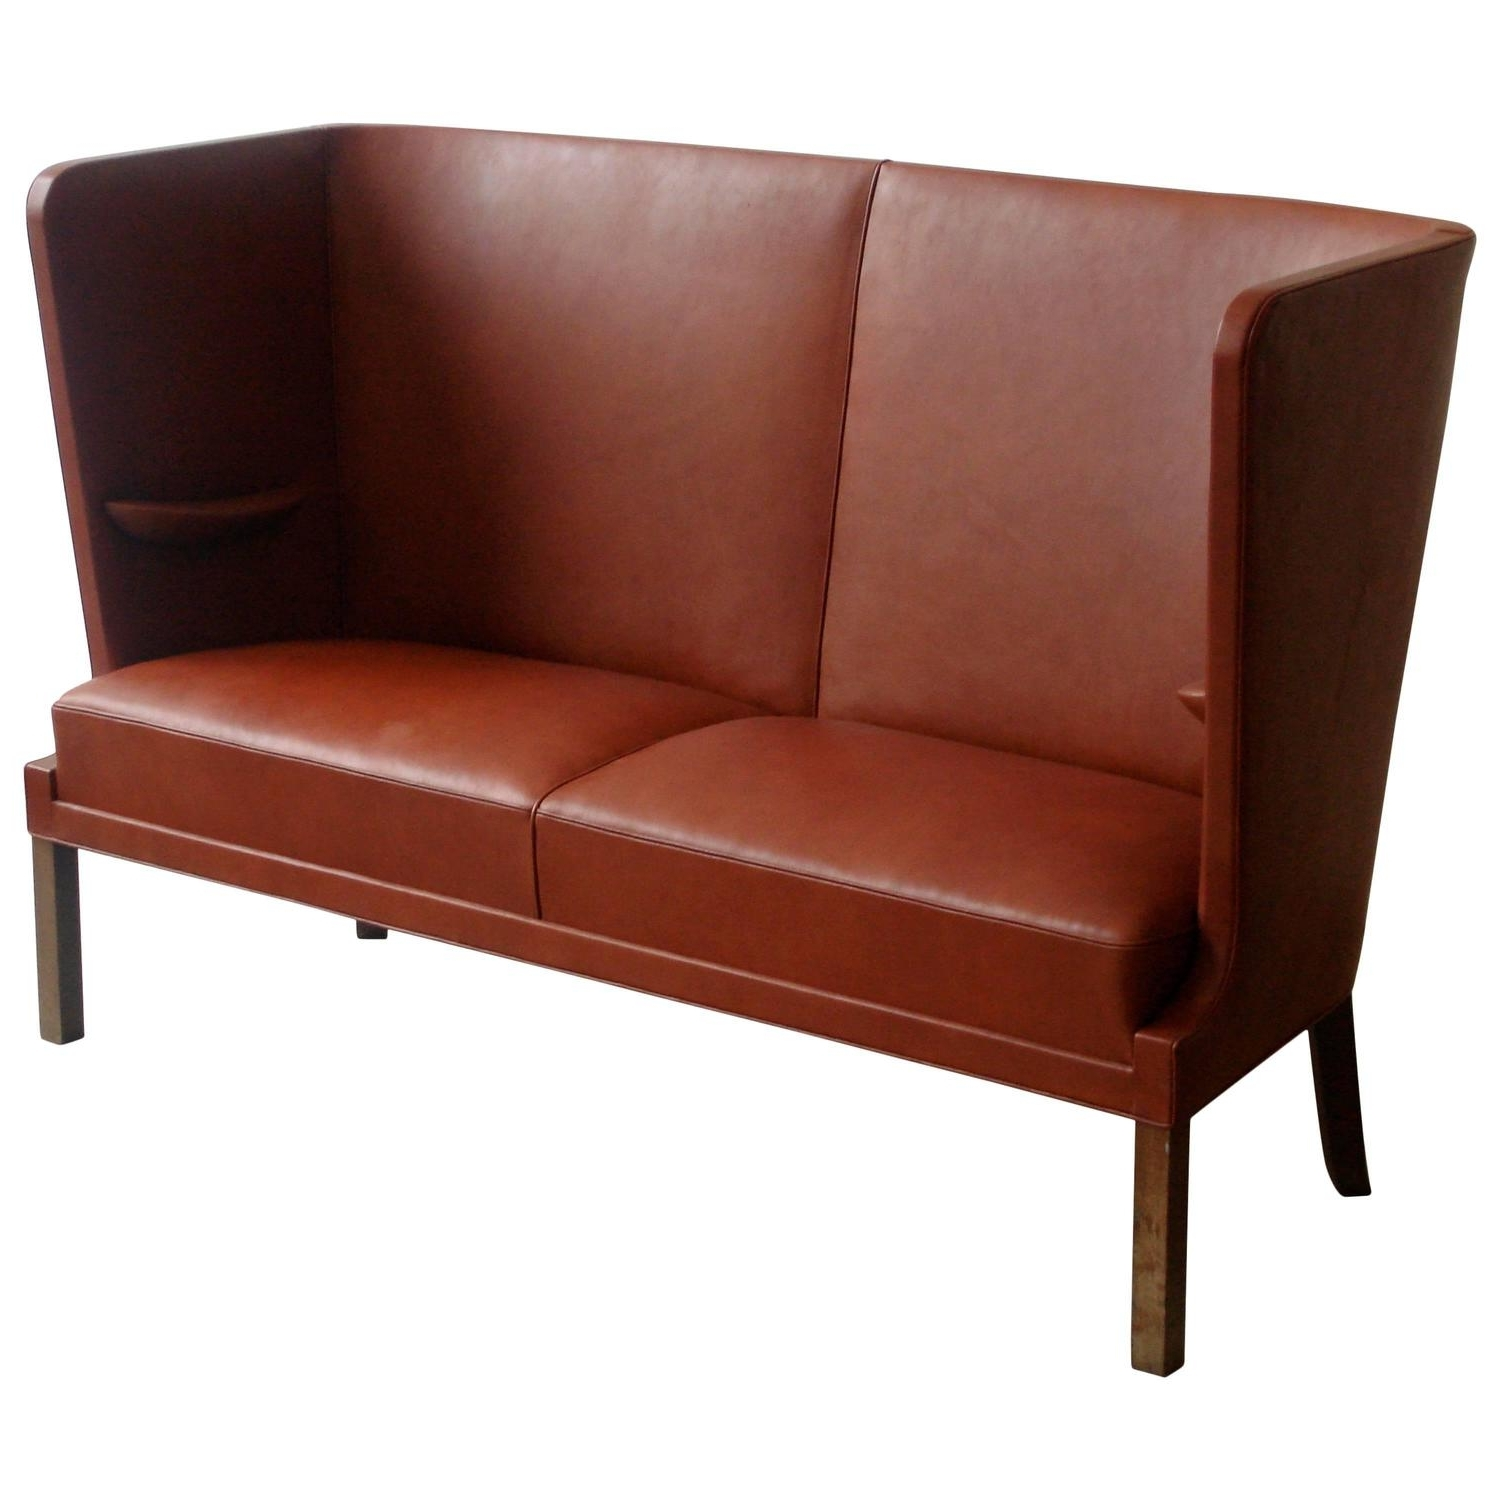 1930S Sofas – 122 For Sale At 1Stdibs Pertaining To Most Popular 1930S Sofas (Gallery 2 of 15)